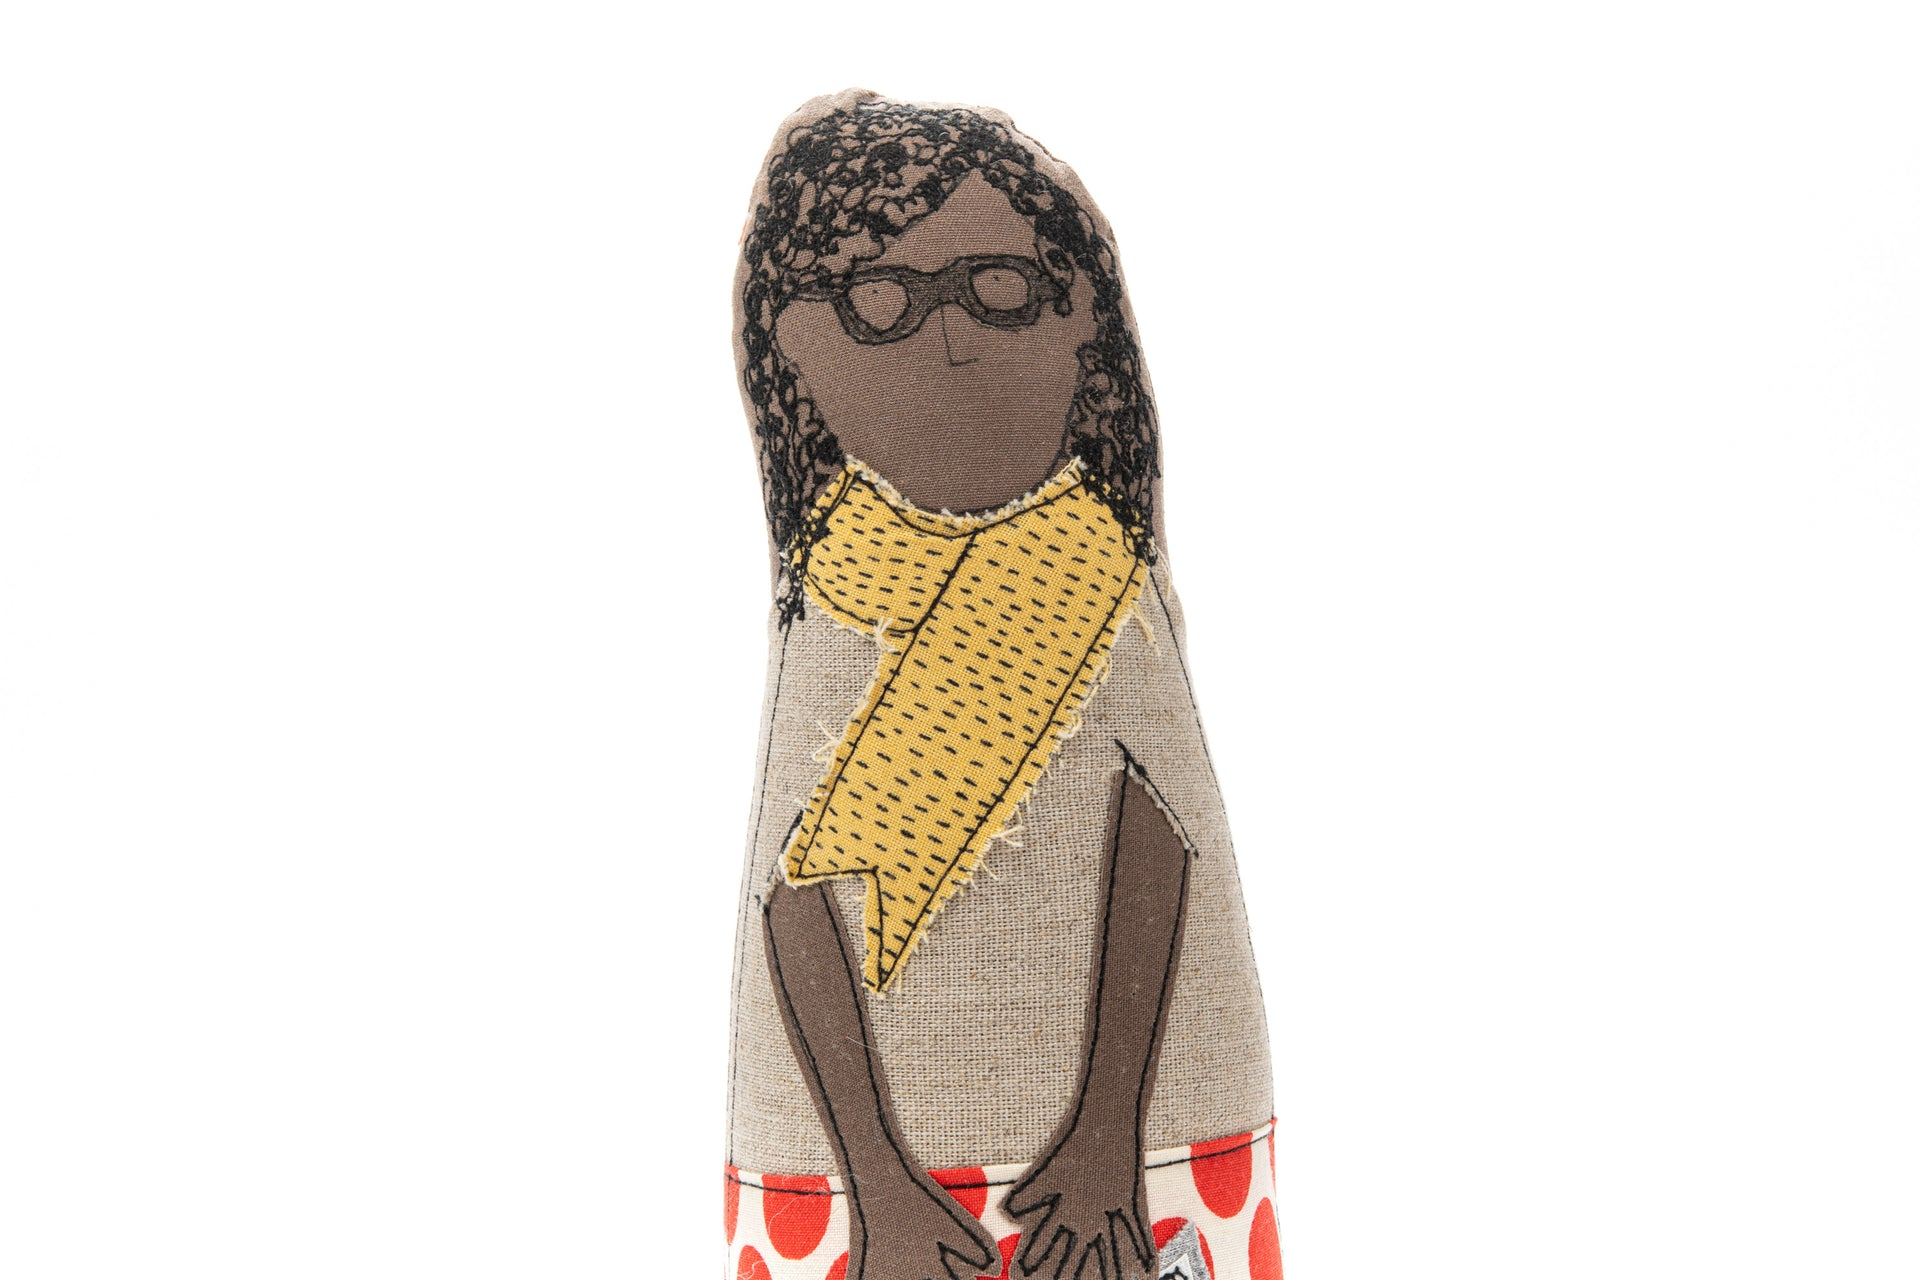 Teacher gift African american doll Brown doll Portrait doll Fabric woman doll Mom gift Family doll Soft sculpture Handmade doll Decor doll